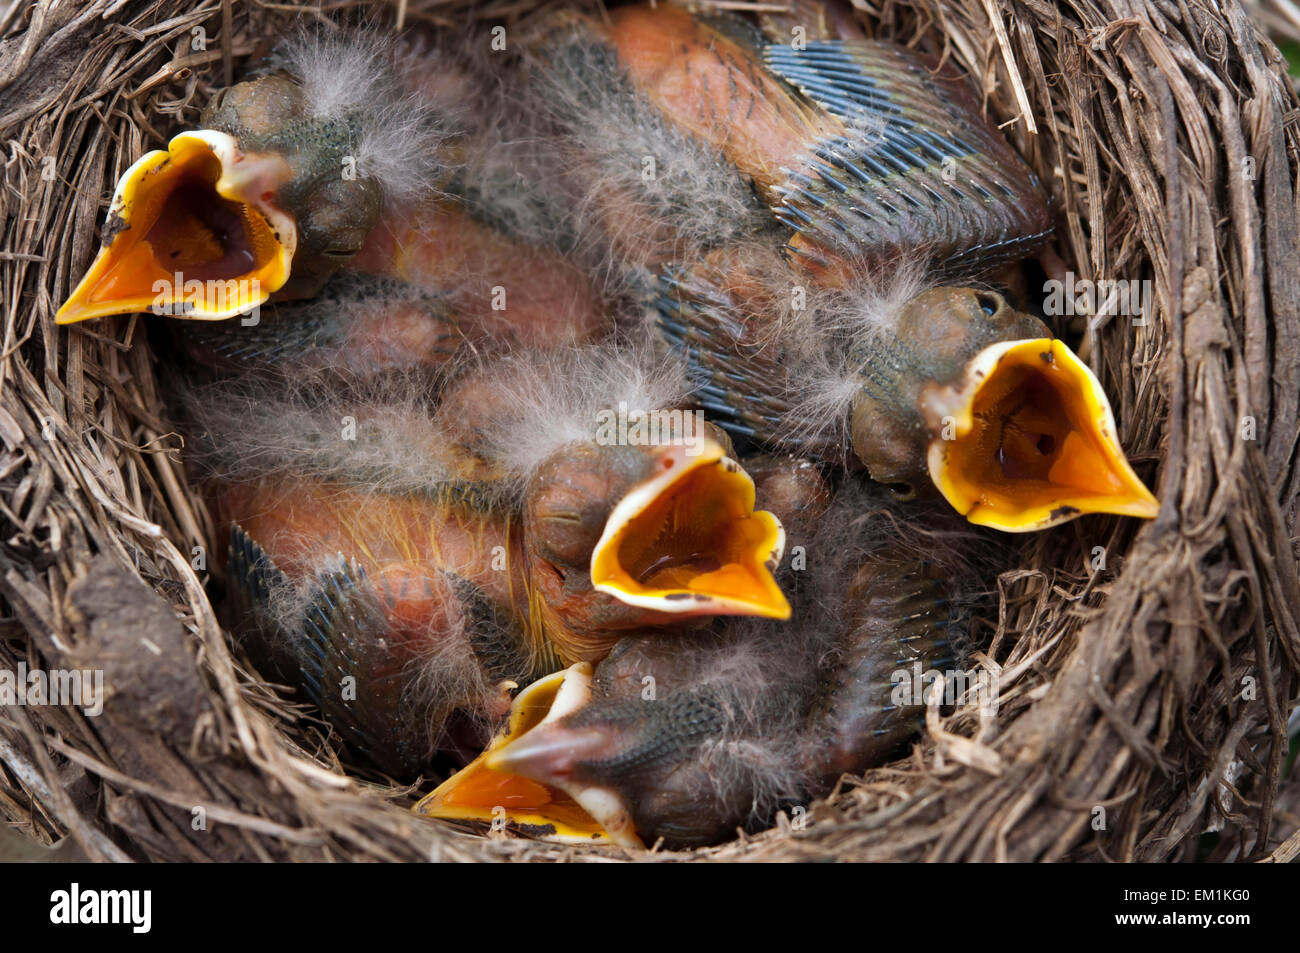 Four baby birds mouth open - Stock Image